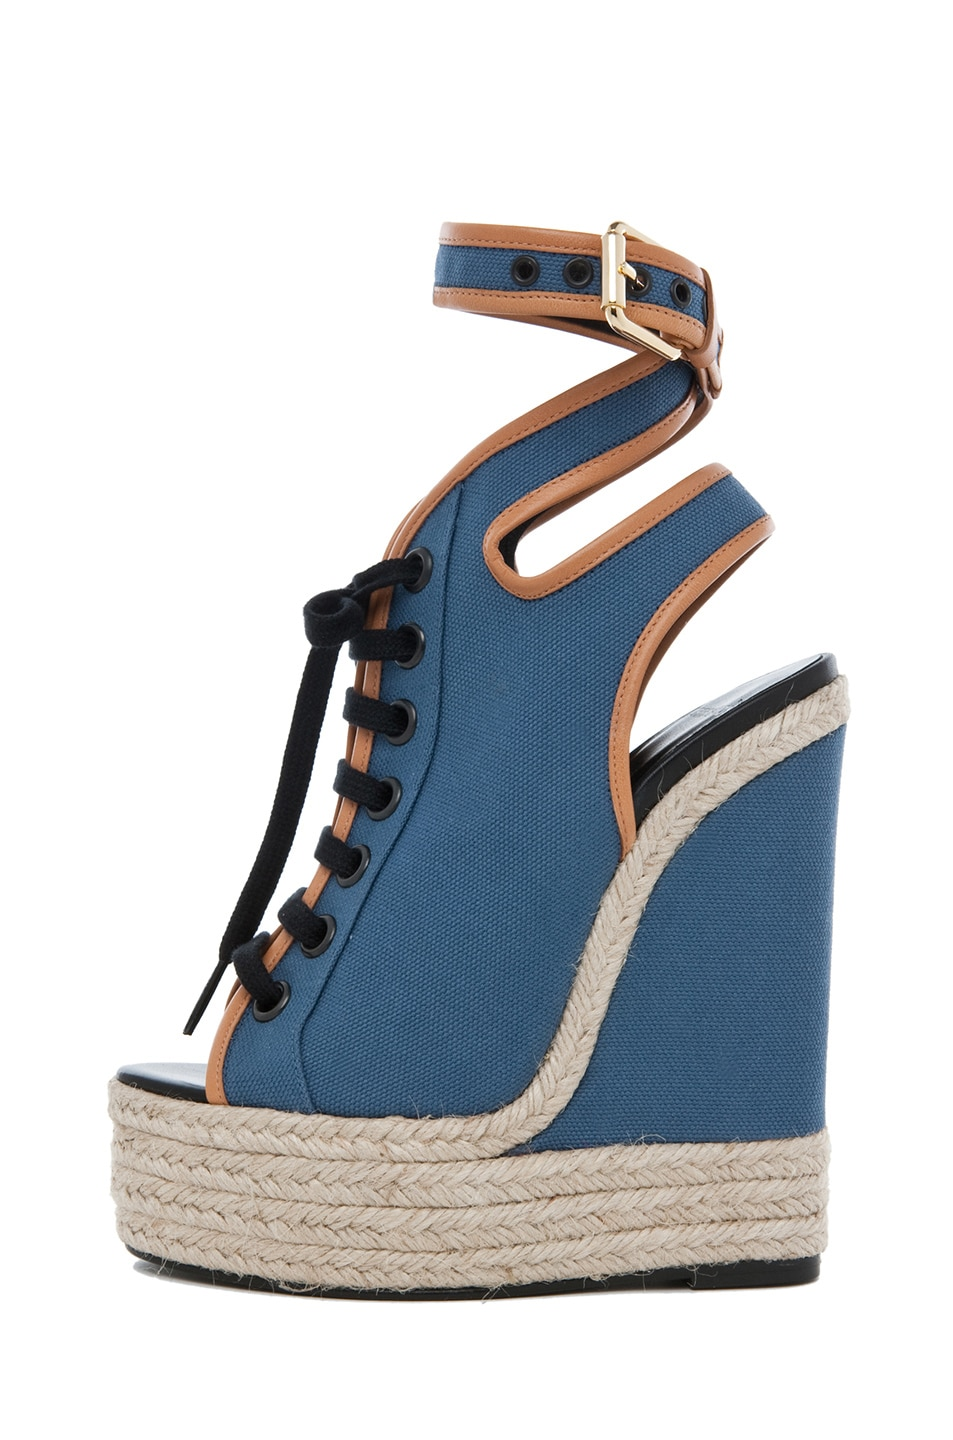 Image 1 of Pierre Hardy Canvas Wedge in Blue & Natural